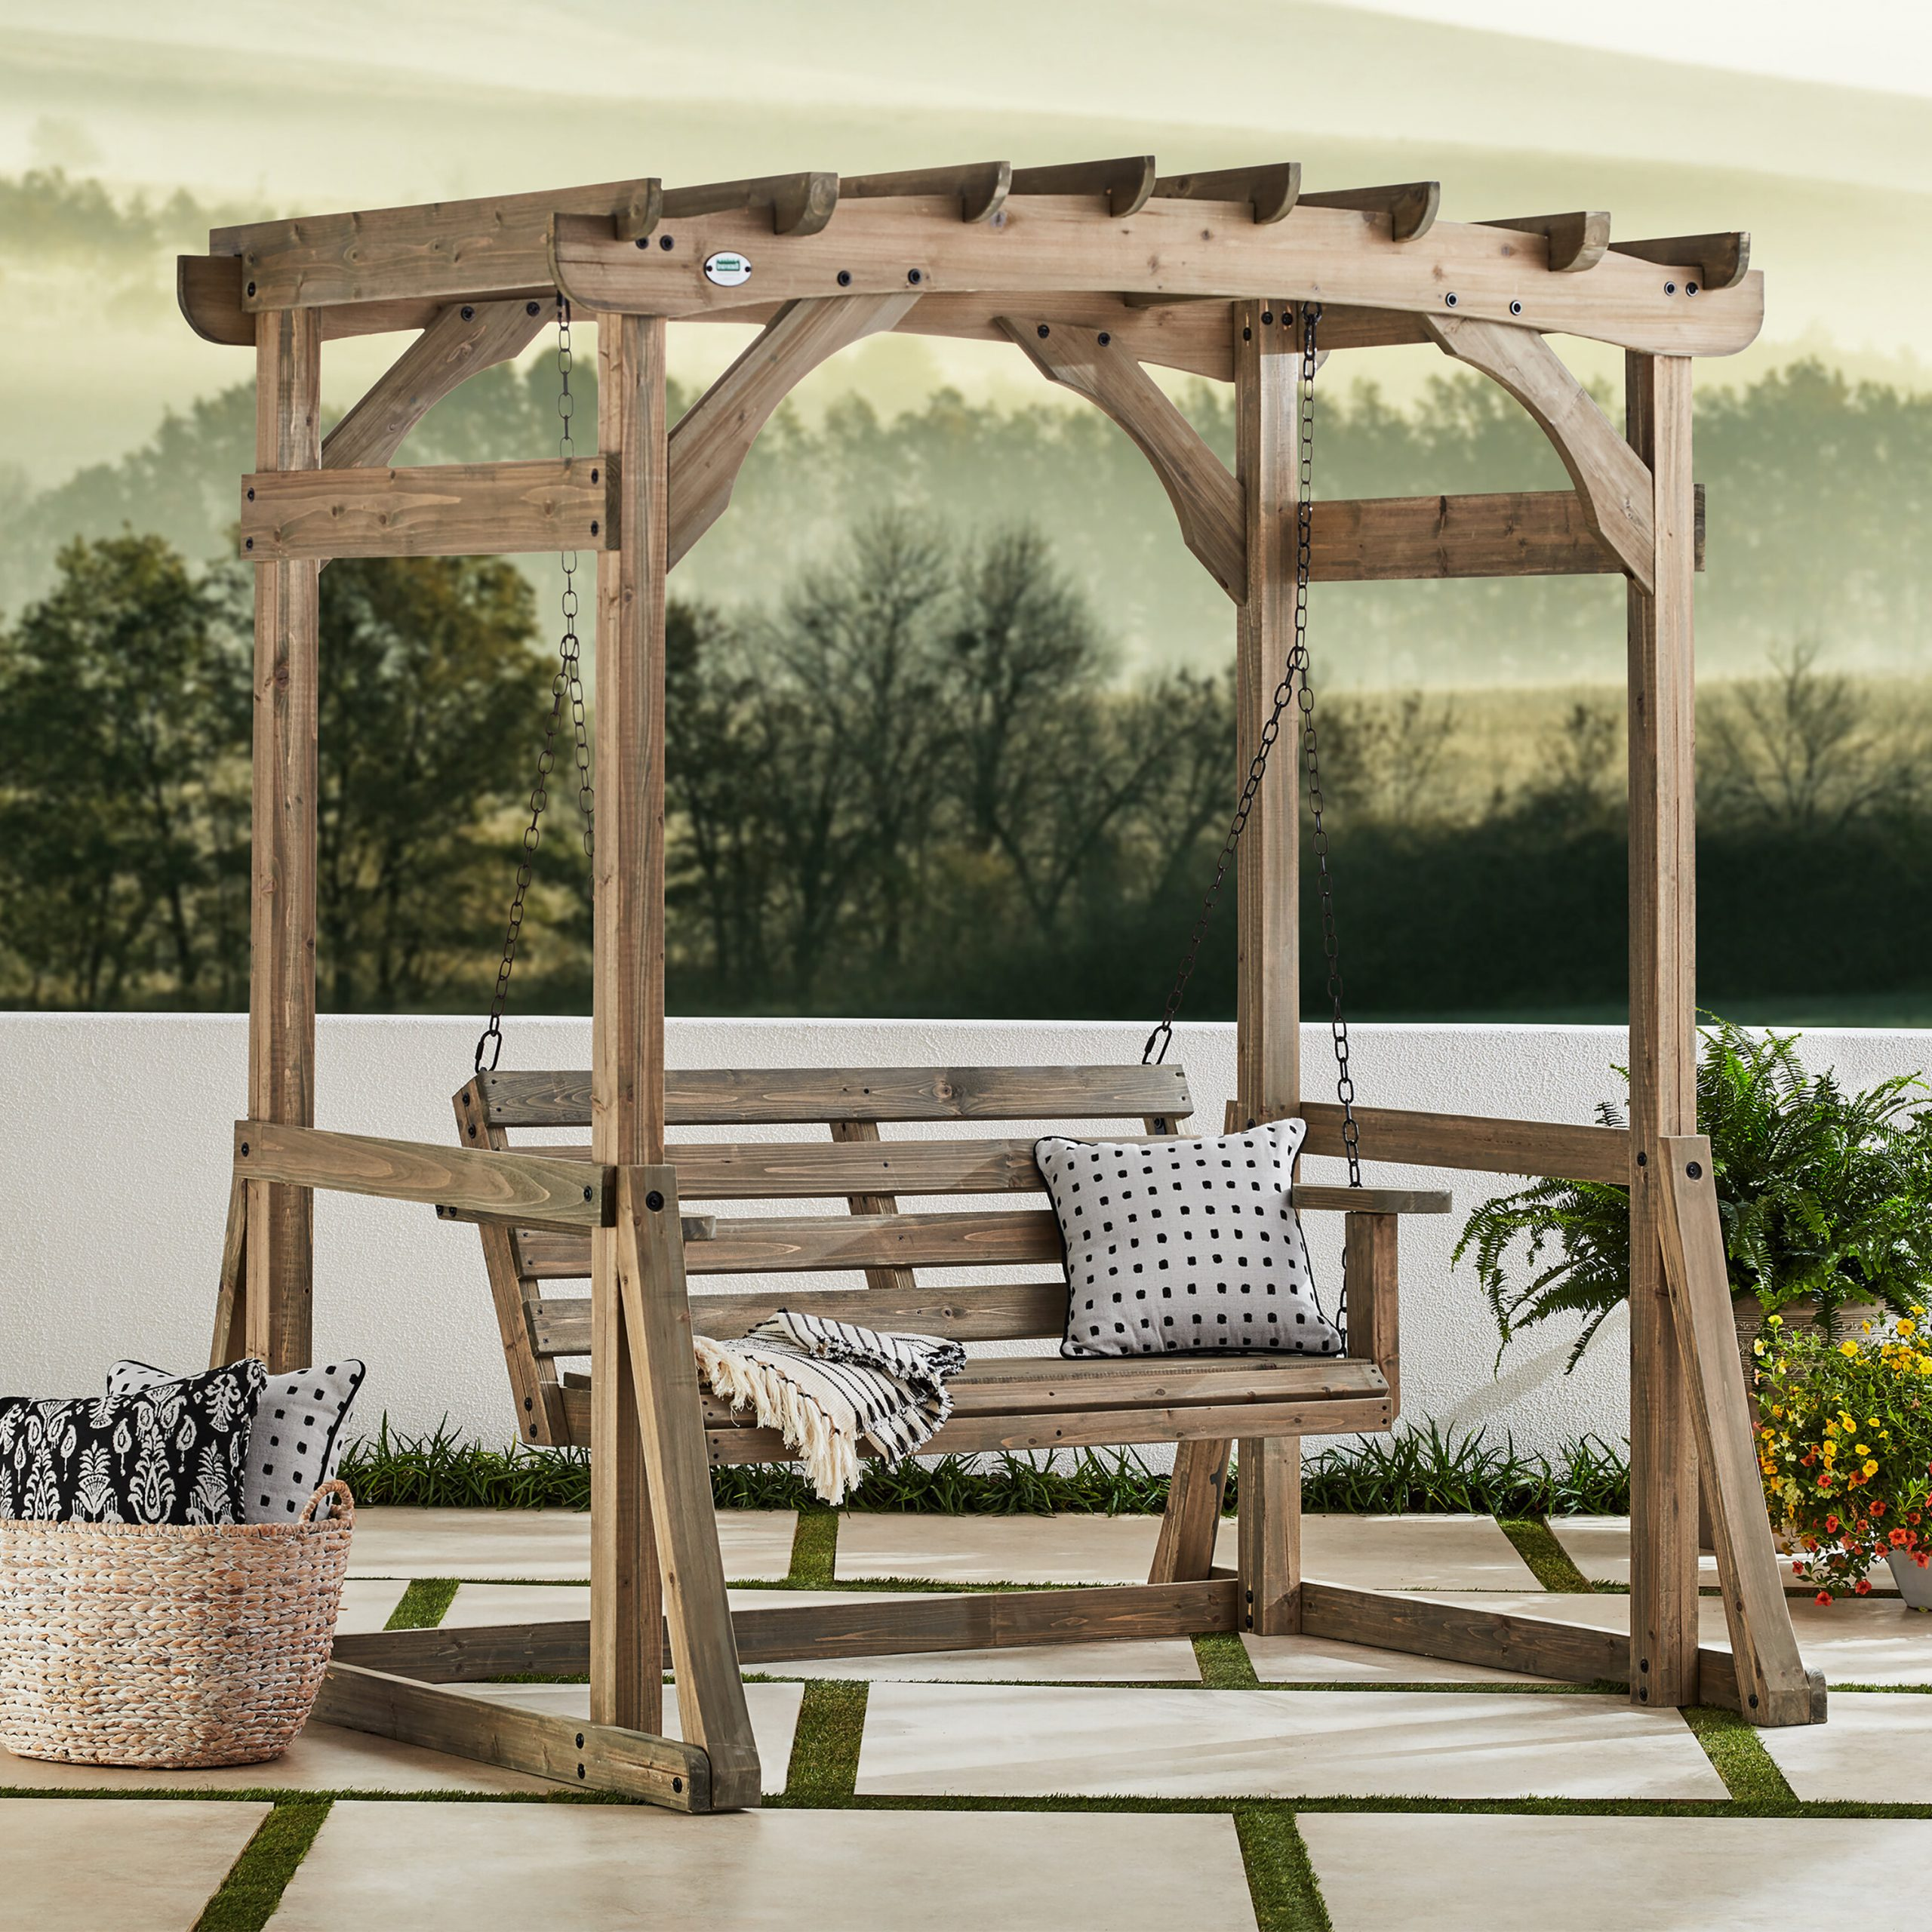 Odessa Pergola Porch Swing With Stand Intended For Famous Pergola Porch Swings With Stand (Gallery 2 of 25)